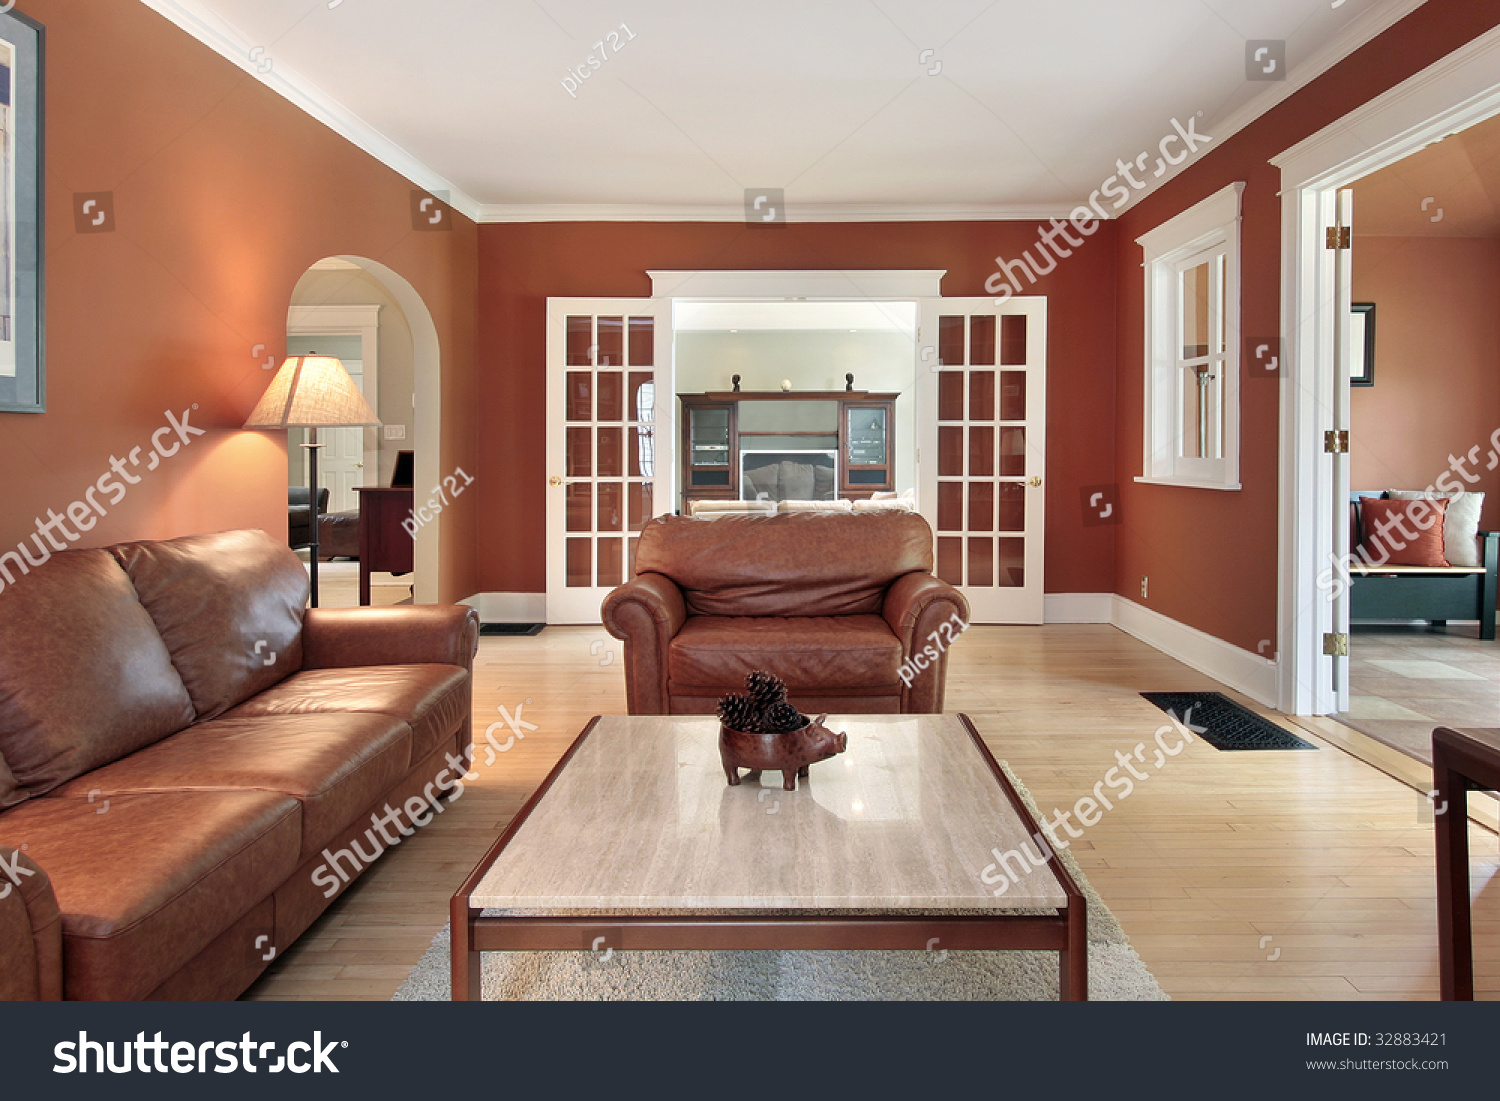 Living Room In Luxury Home With Orange Walls